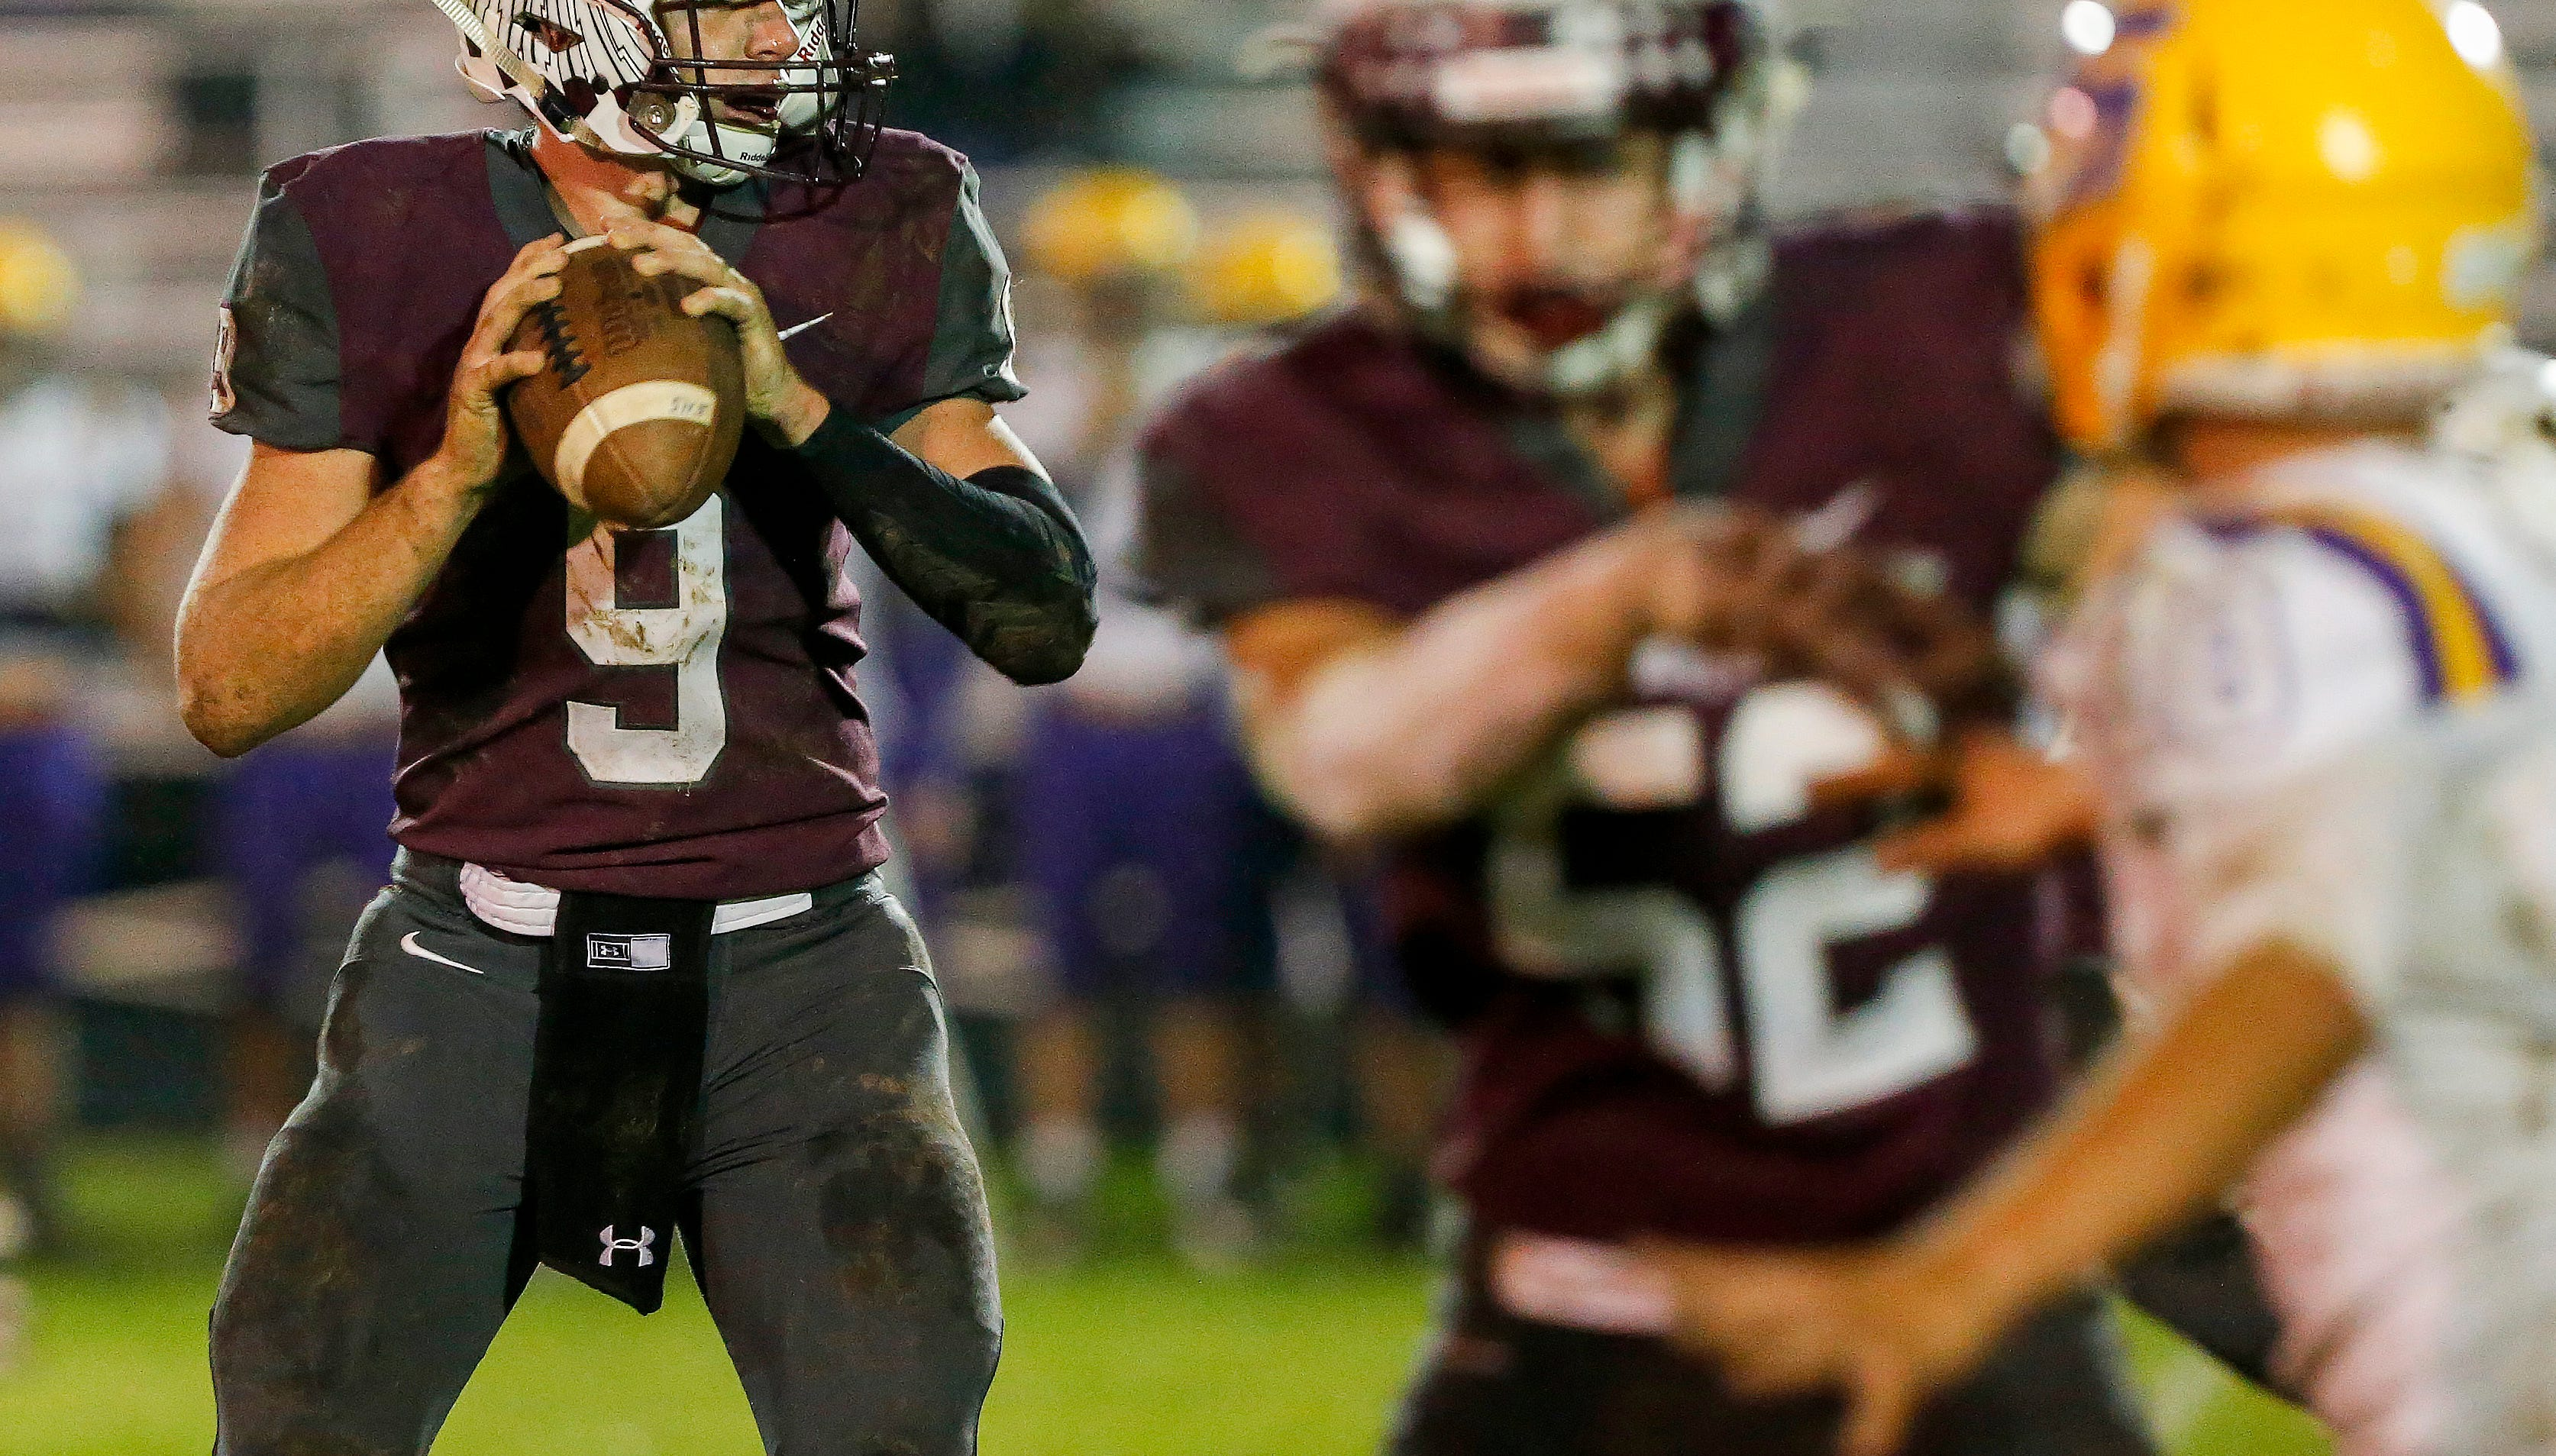 Wyatt Maples of Strafford looks for an open receiver in the Indians win over Slater at Strafford High School on Friday, Oct. 19, 2018.